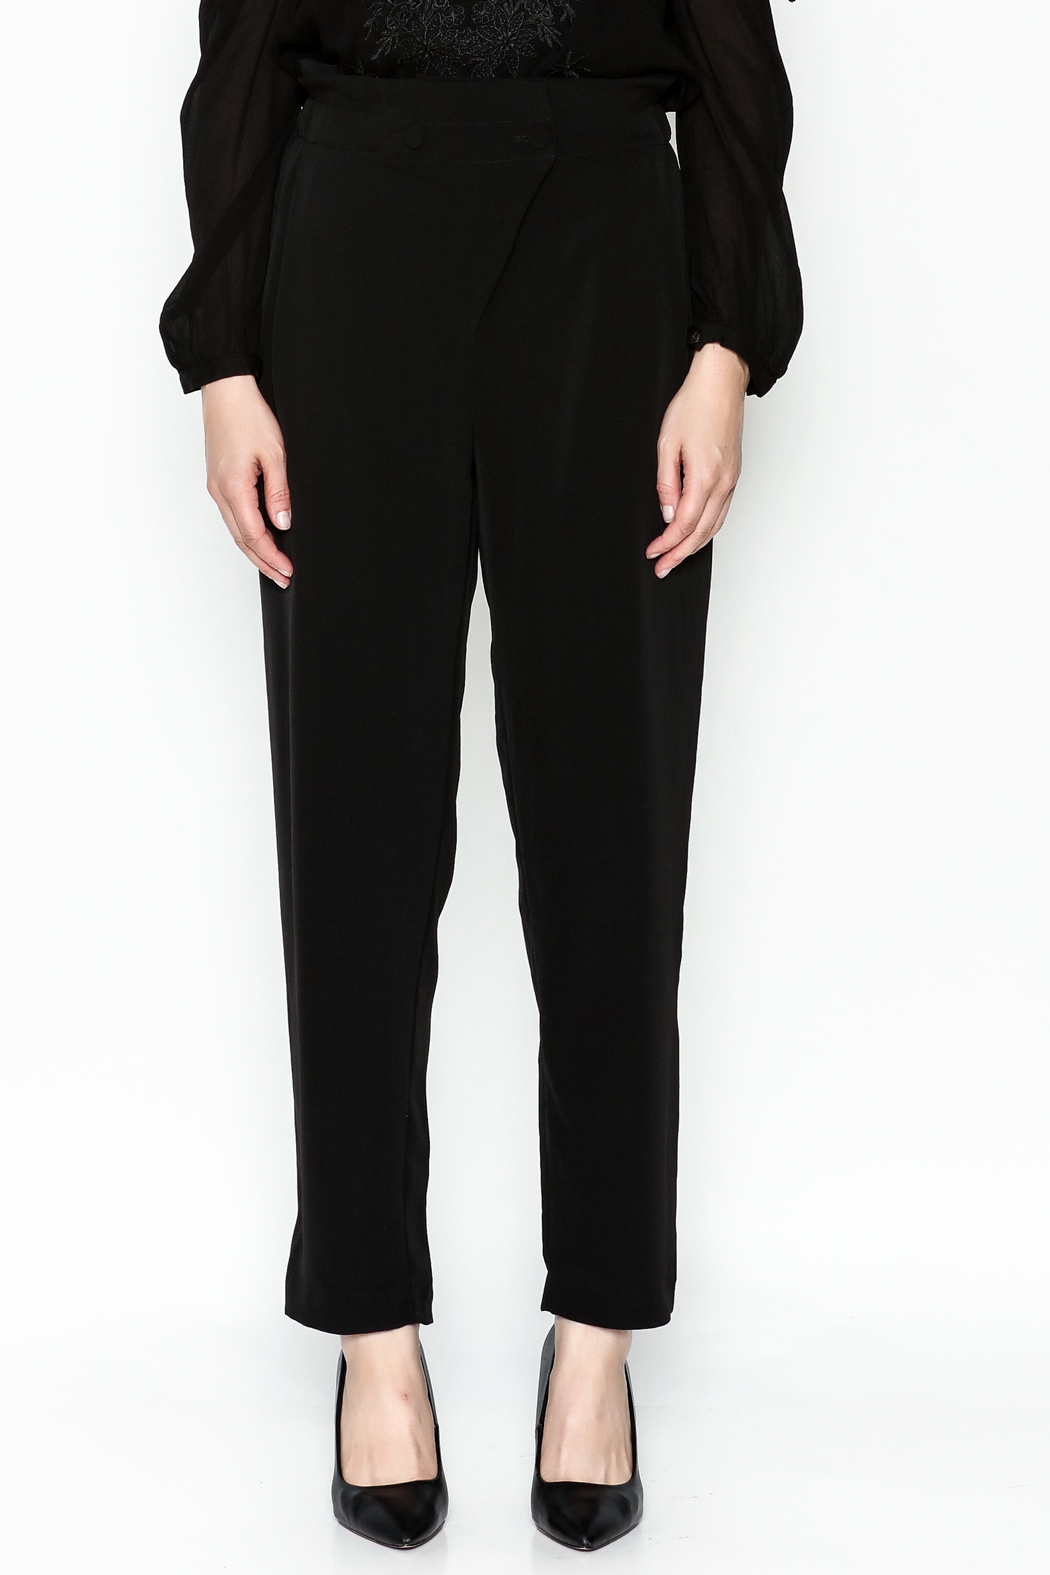 WREN & WILLA Gold Button Pants - Front Full Image